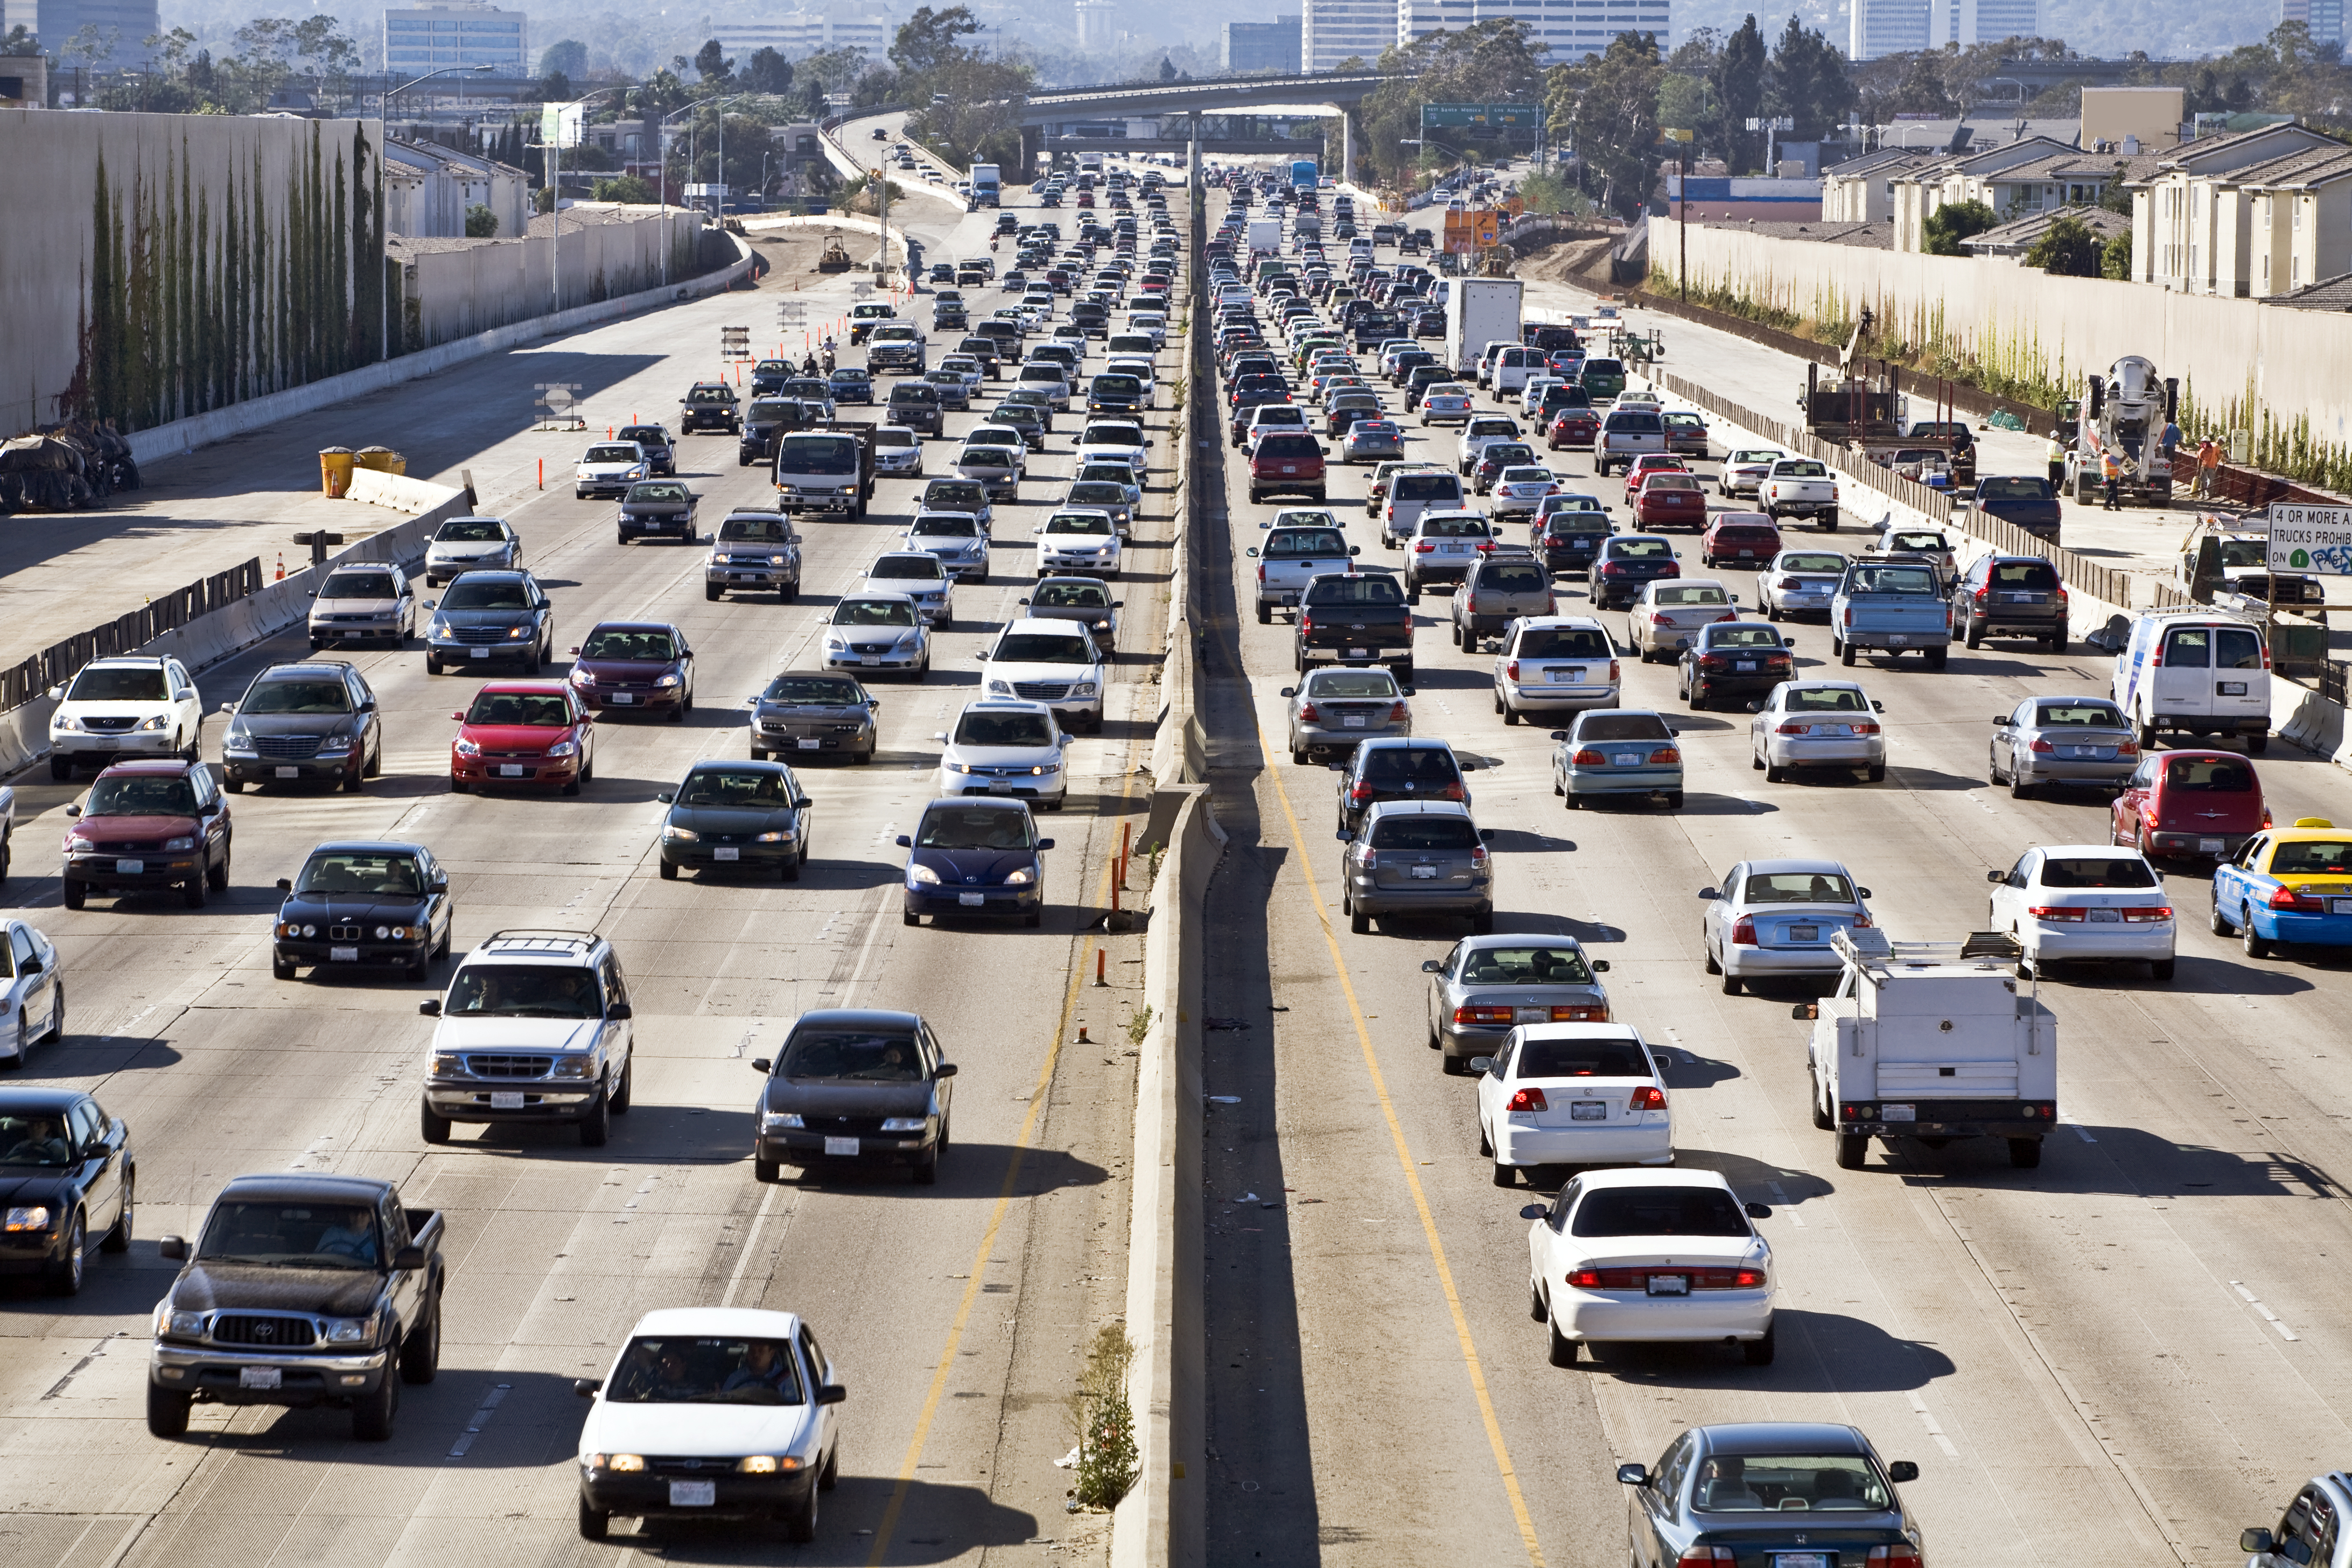 Metro directors question fairness of congestion pricing